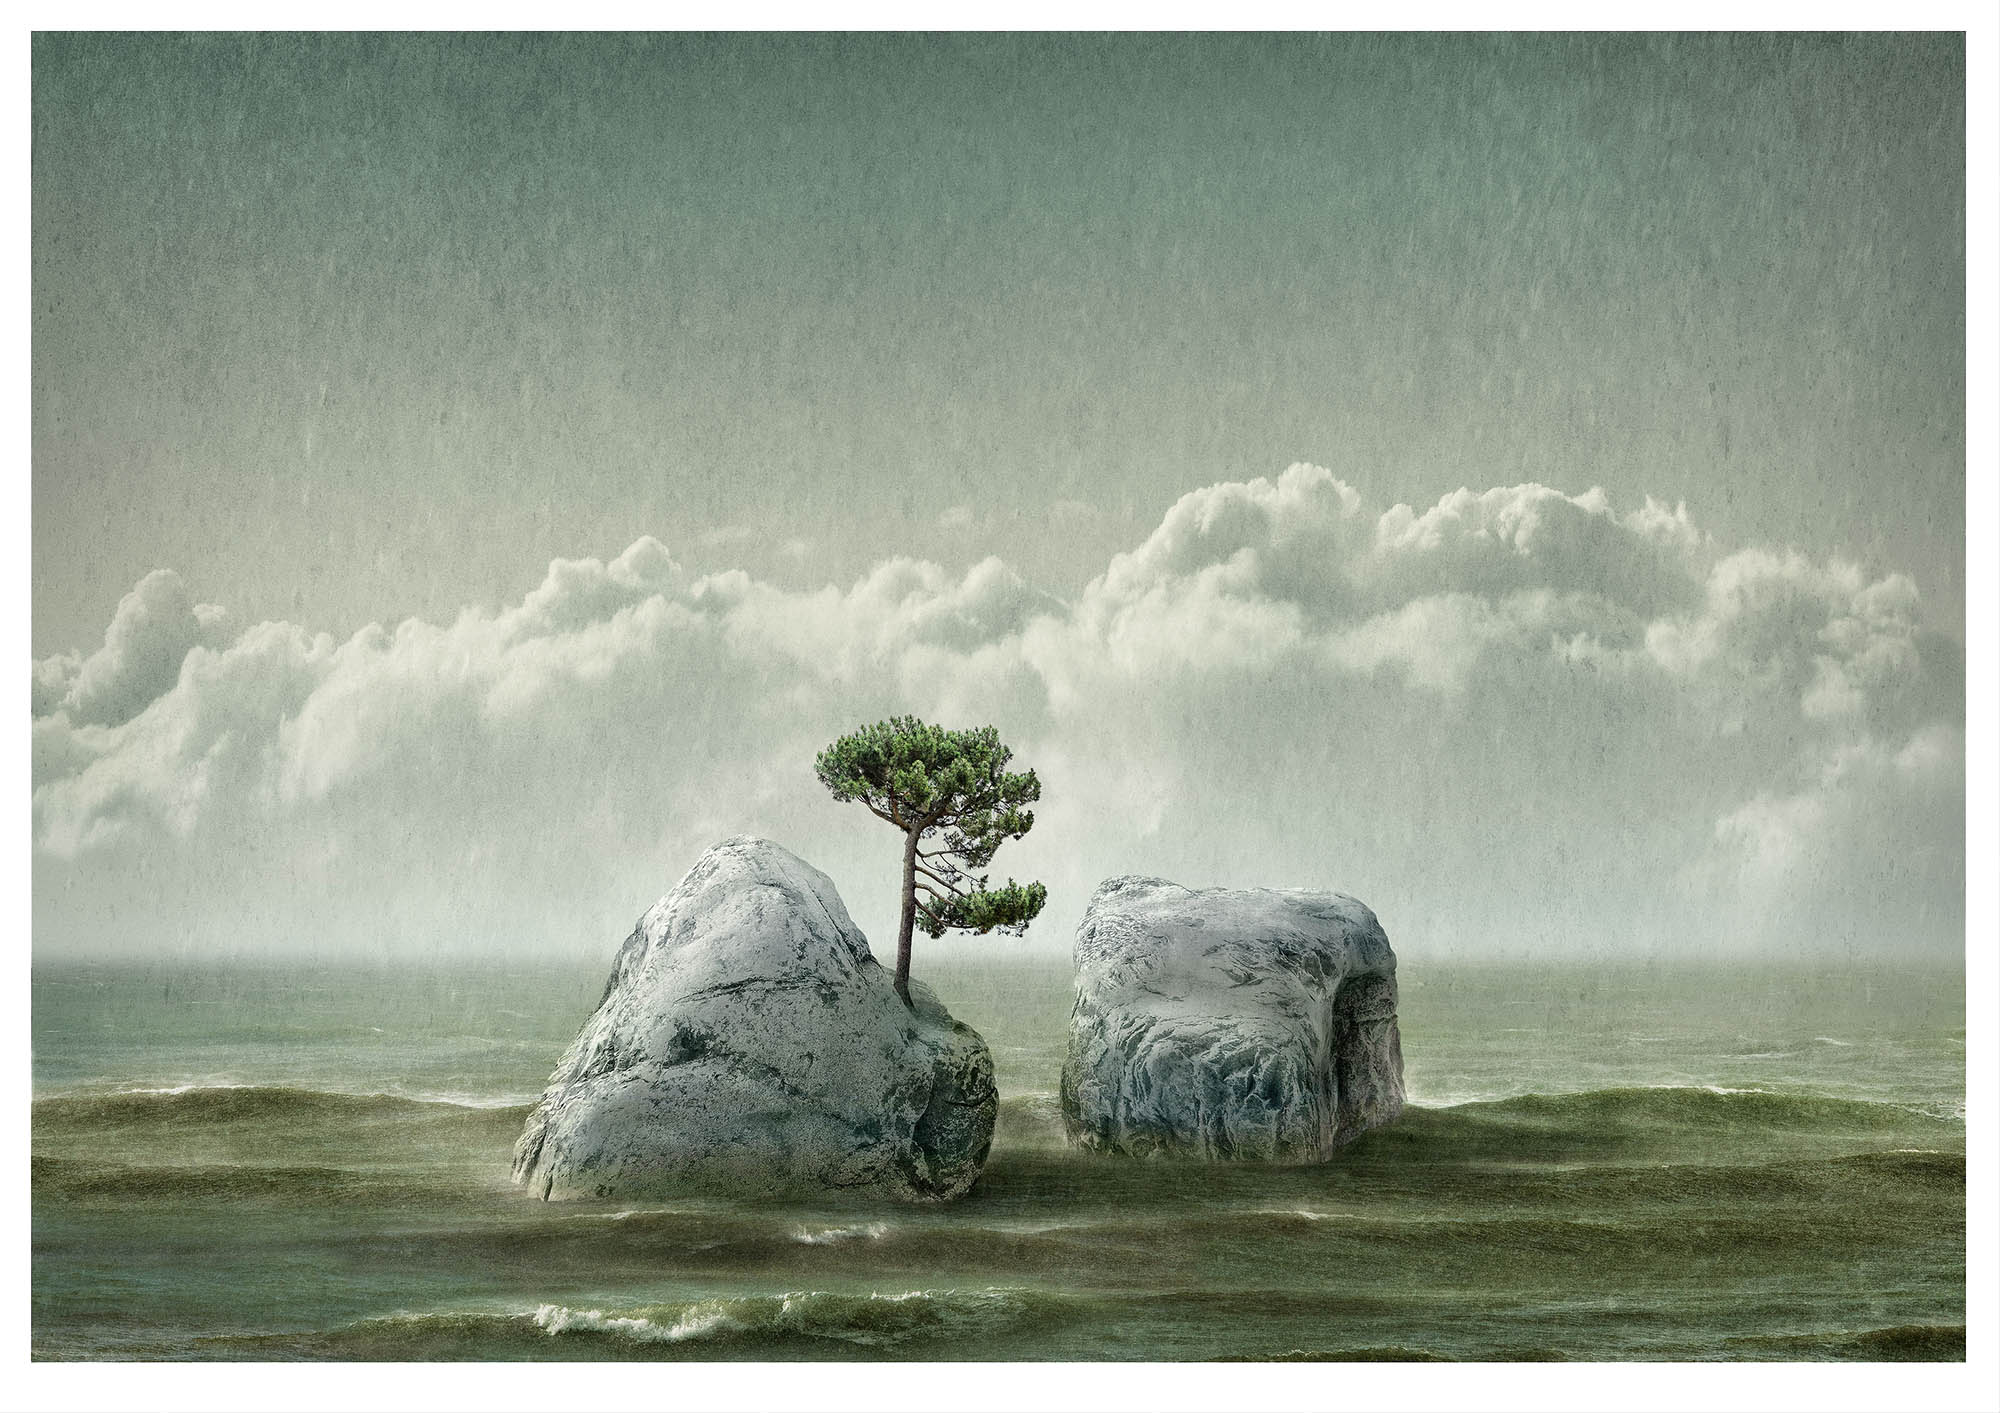 Illustrative fantasy, composite photograph with two small islands with one pine tree in middle of a sea